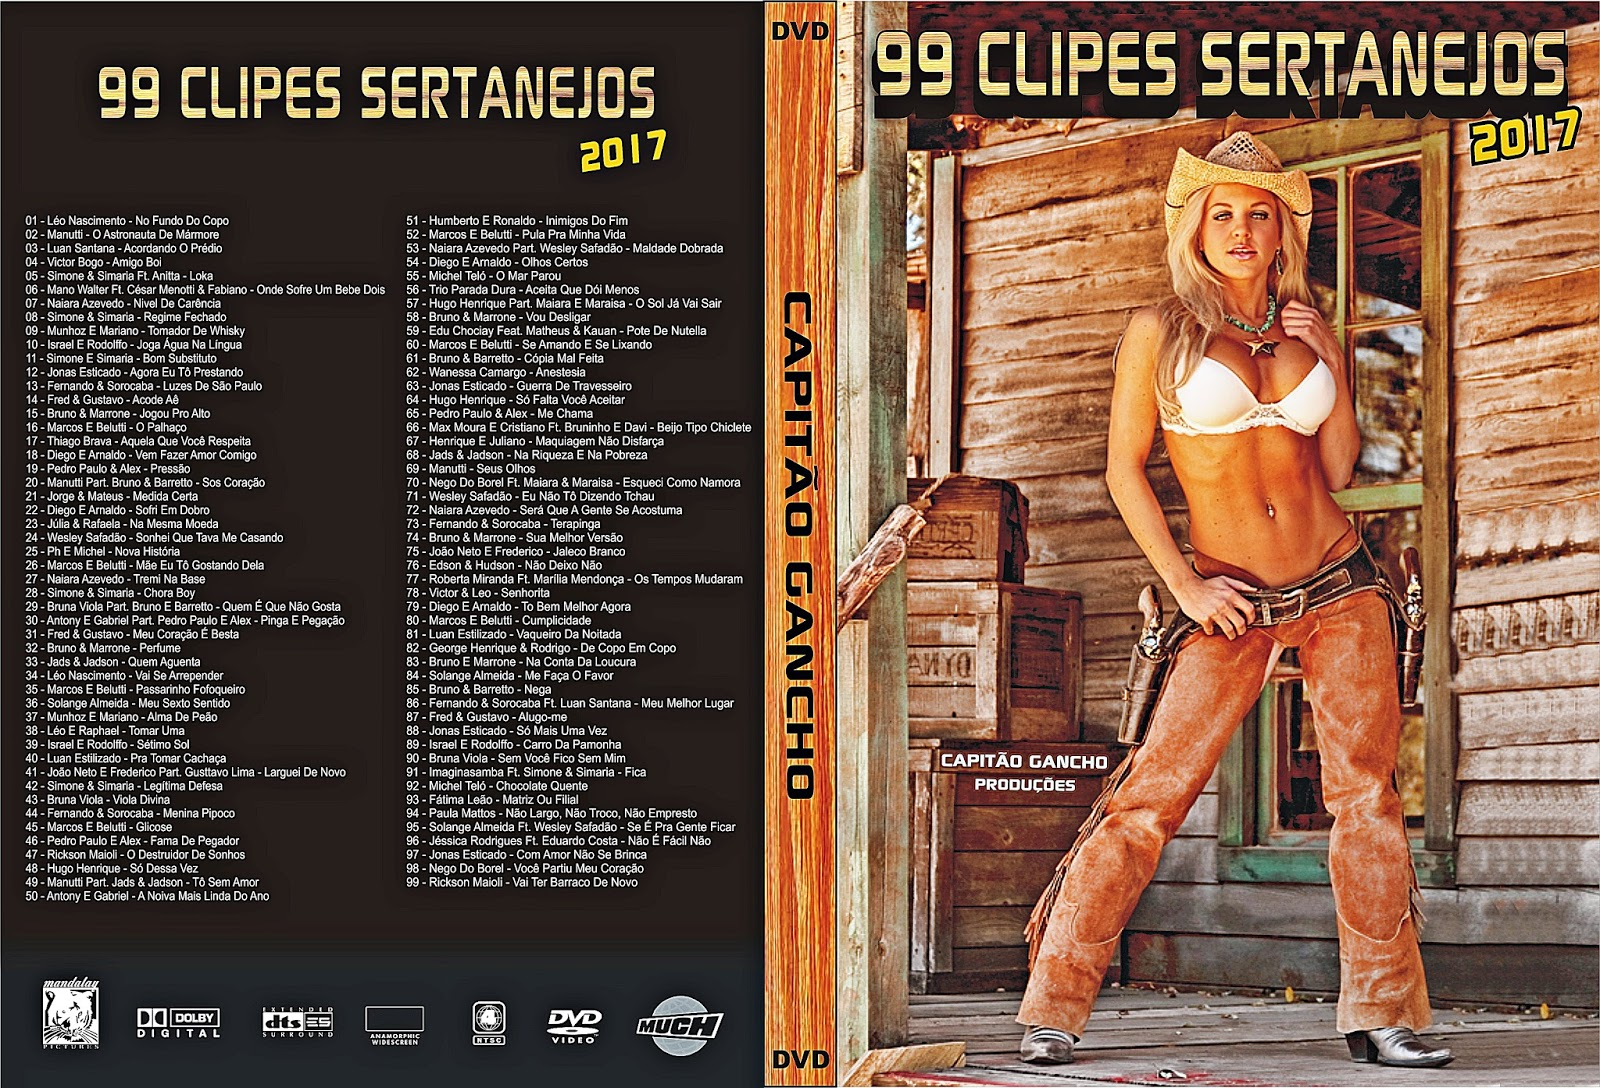 brasil sertanejo 99 clipes 2011 dvd-r